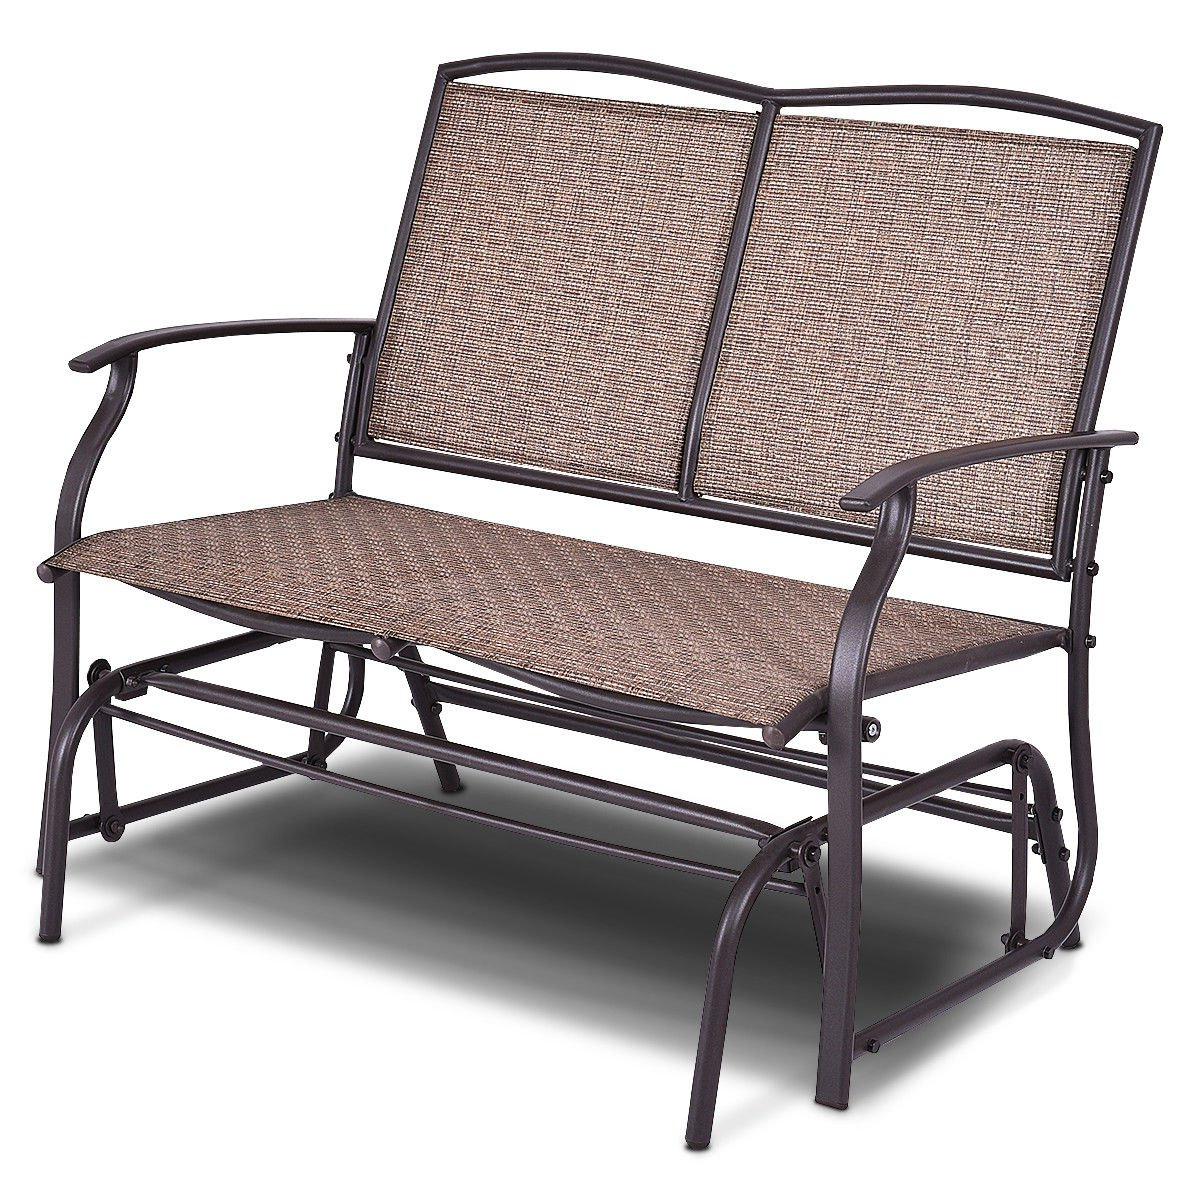 Aluminum Outdoor Double Glider Benches Within Trendy Amazon : Allblessings 2 Person Patio Glider Rocking (View 7 of 30)